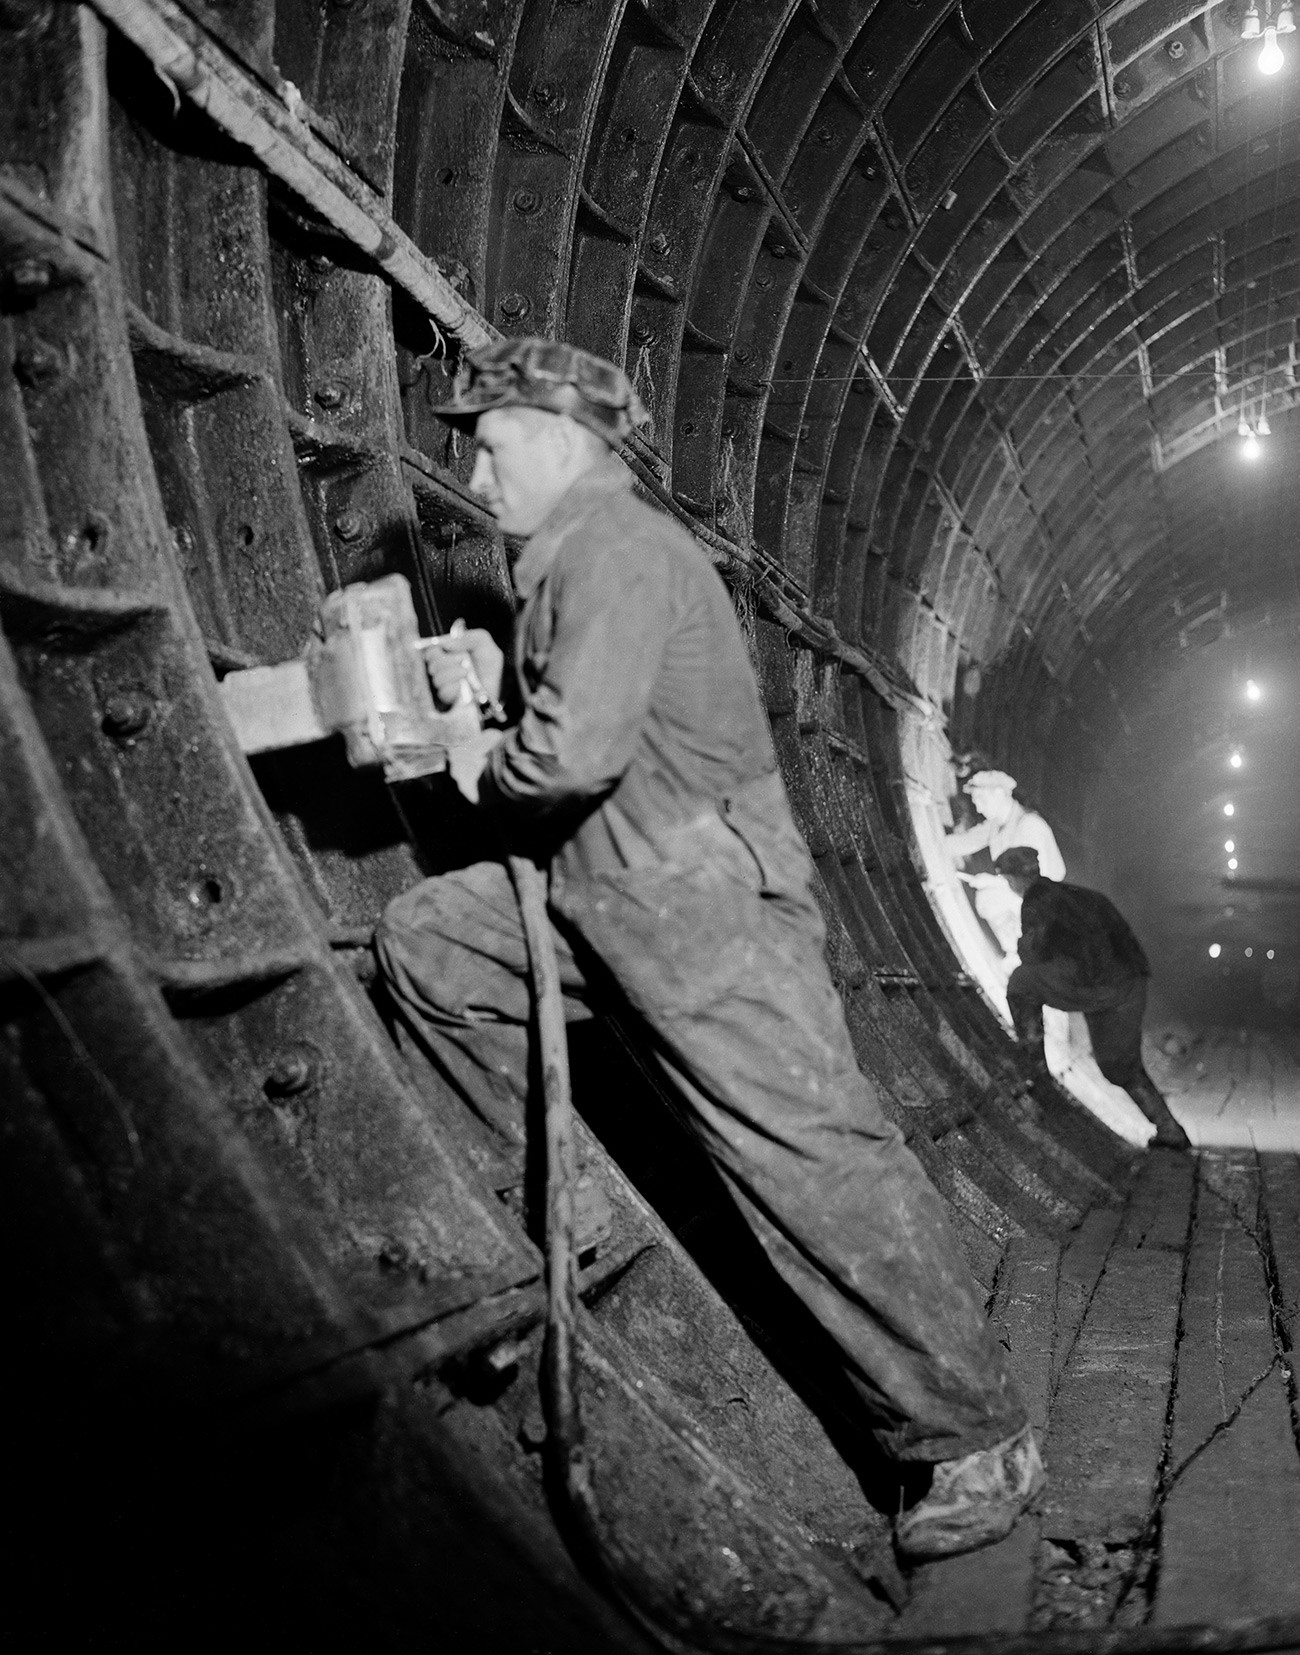 Building the Arbatsko-Pokrovskaya metro line in Moscow, 1944.